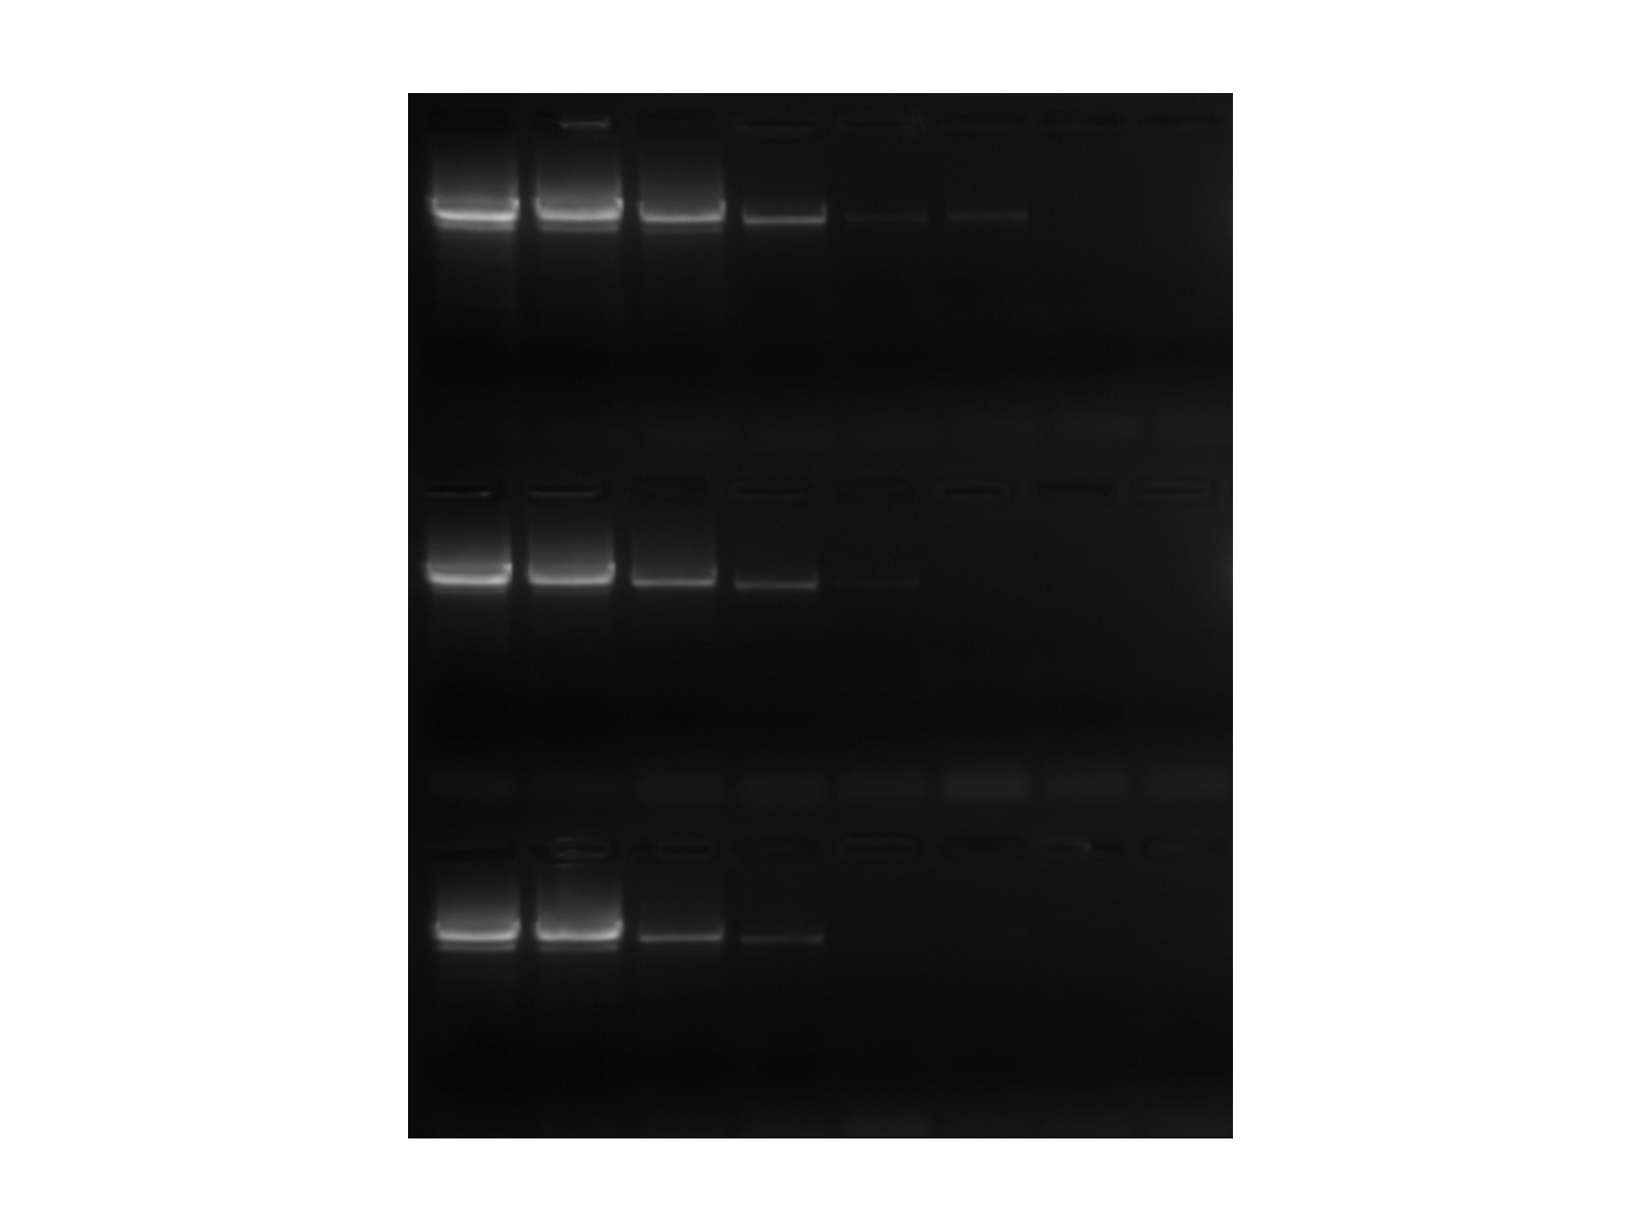 Image of endpoint gel comparing PCRBIO HS Taq DNA Polymerase against Kapa Biosystems and Invitrogen